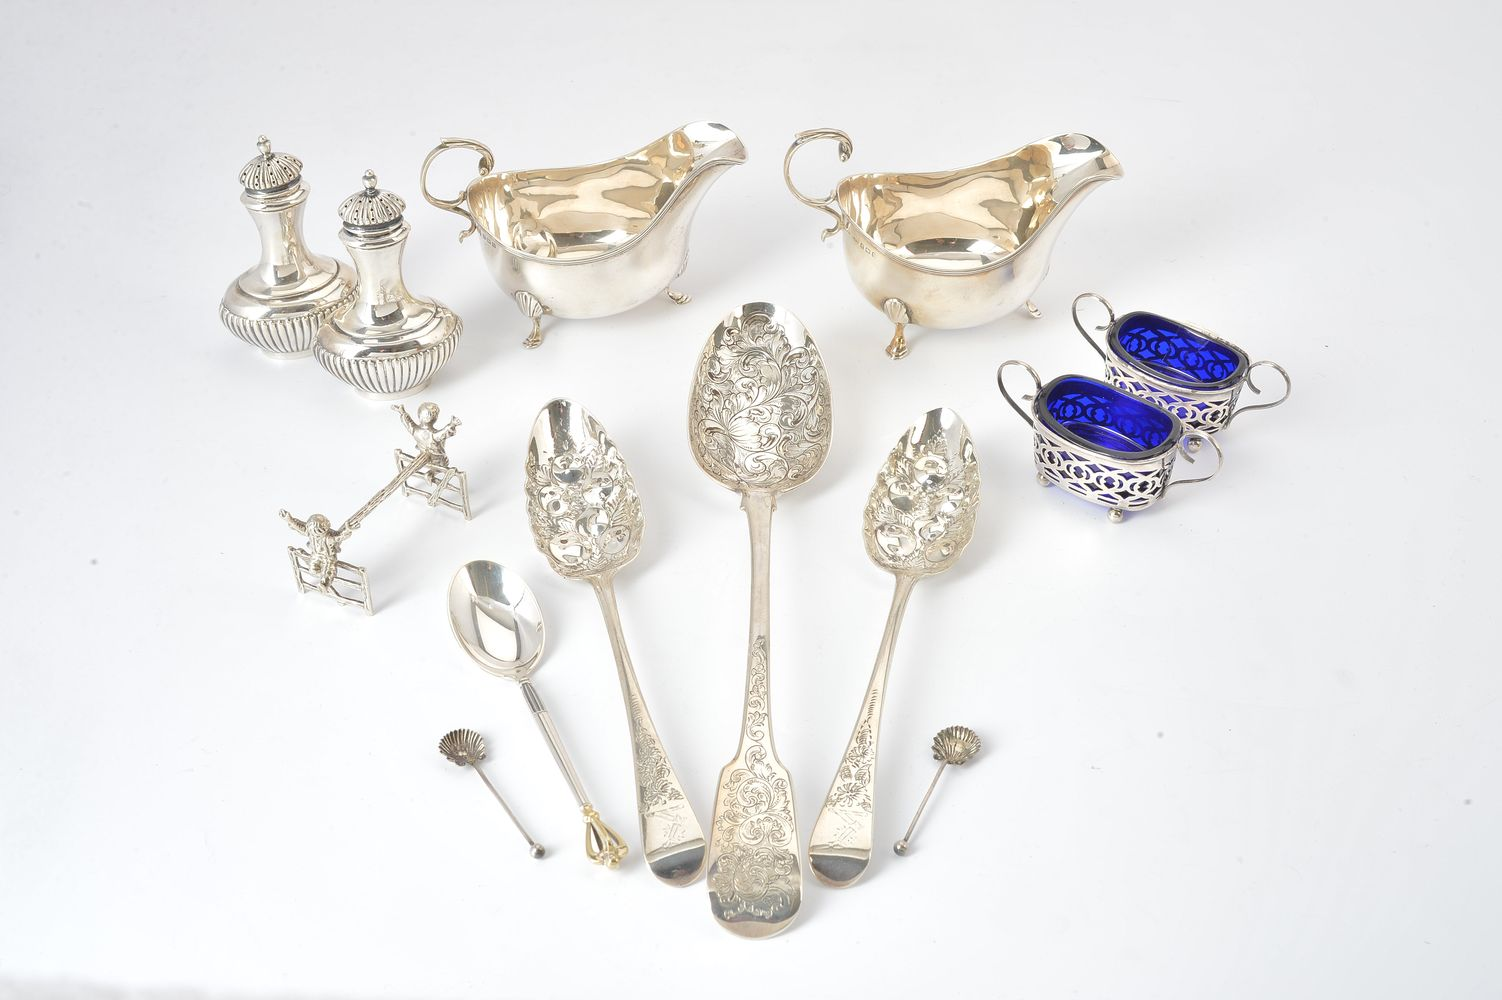 A collection of silver for the table